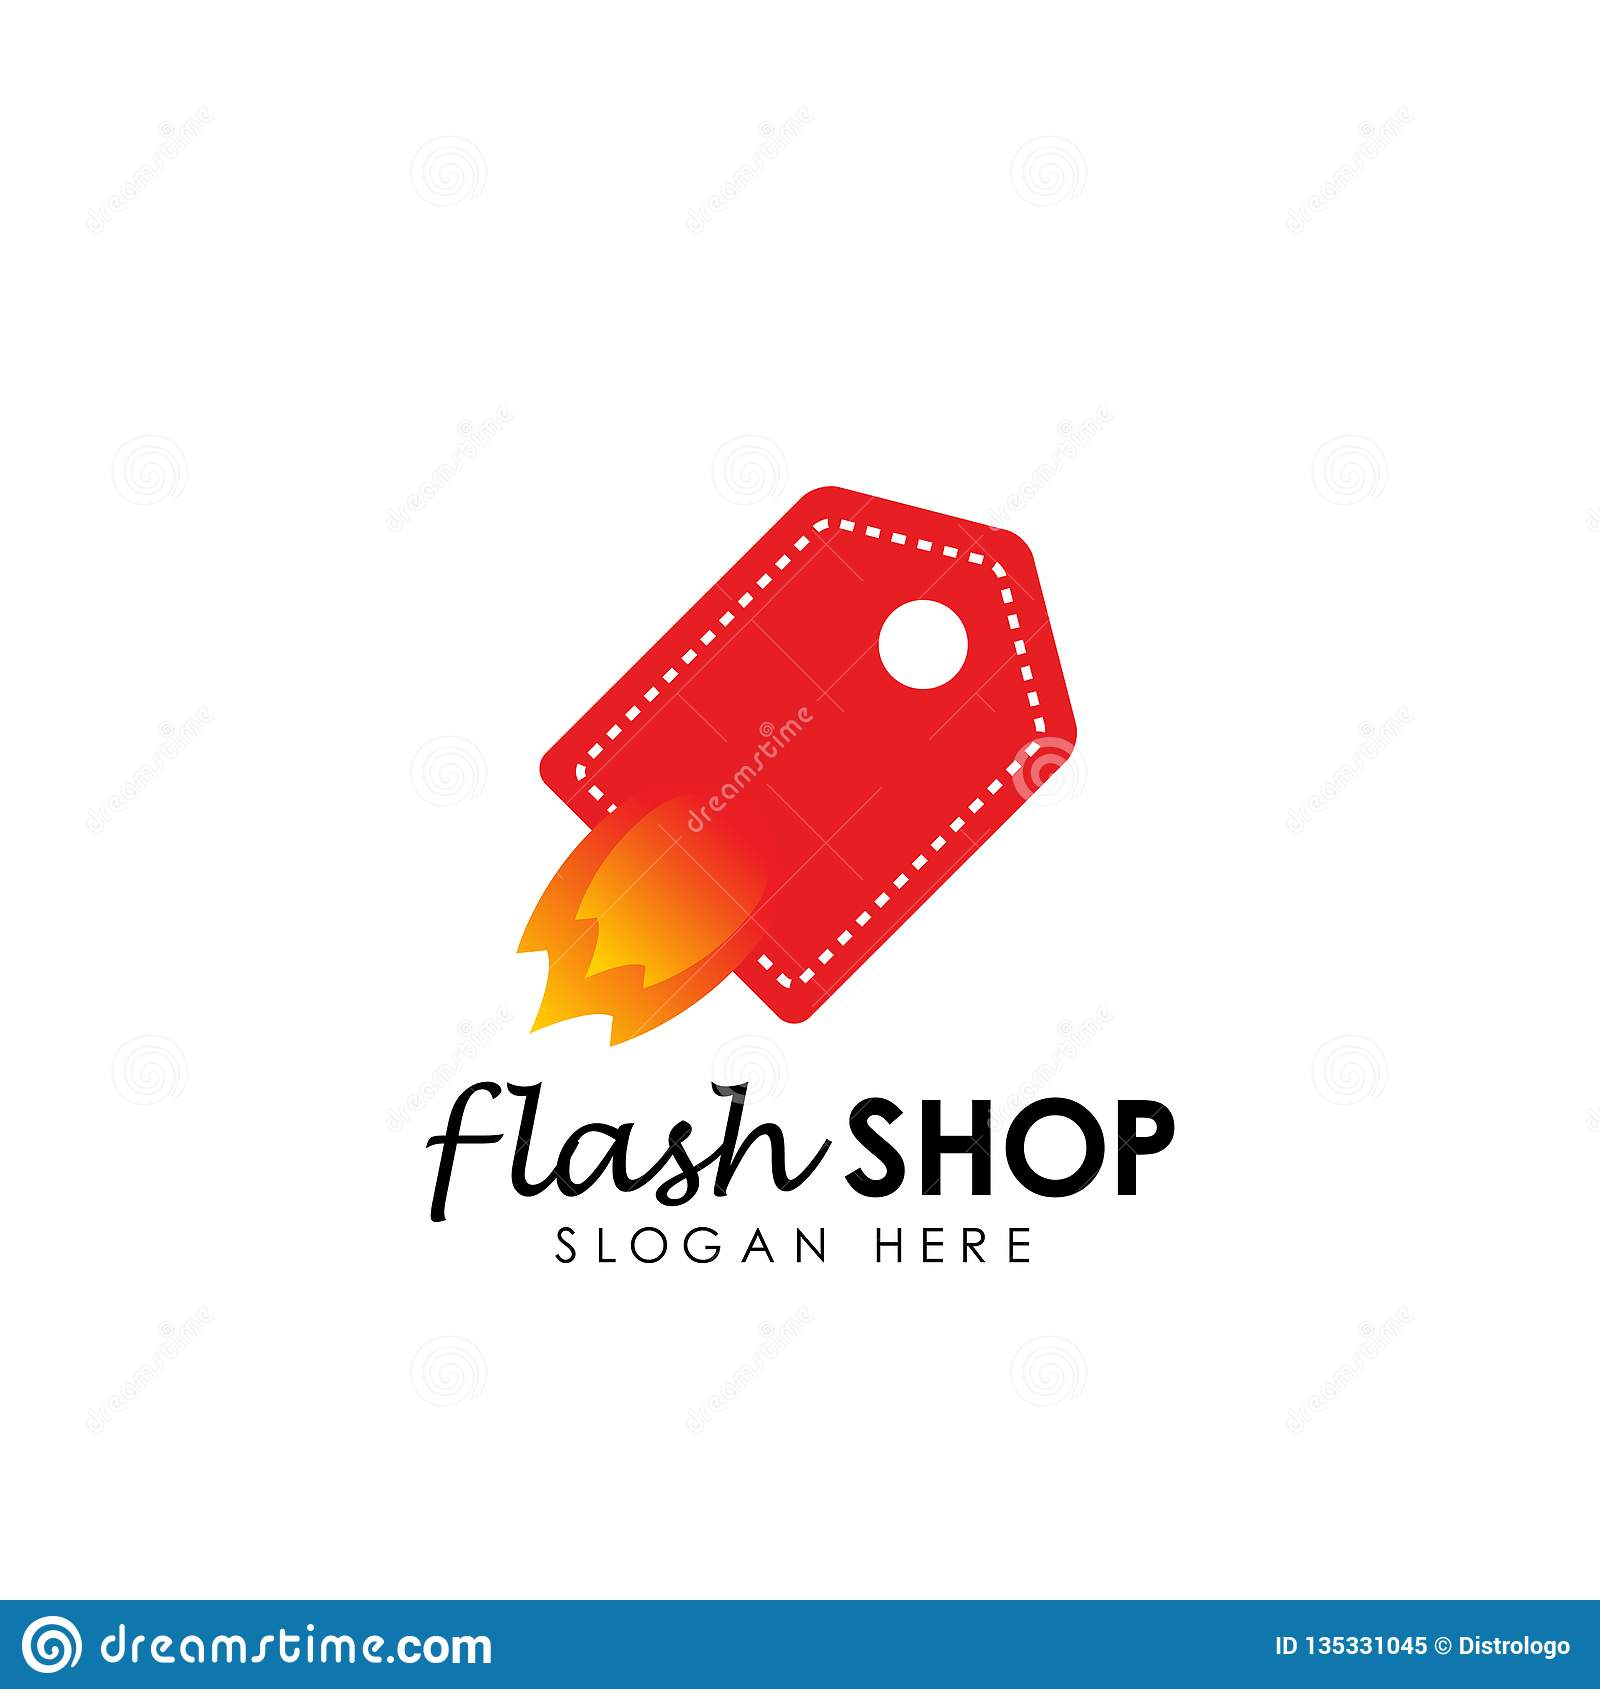 flash shop logo design template. flash sale vector illustration